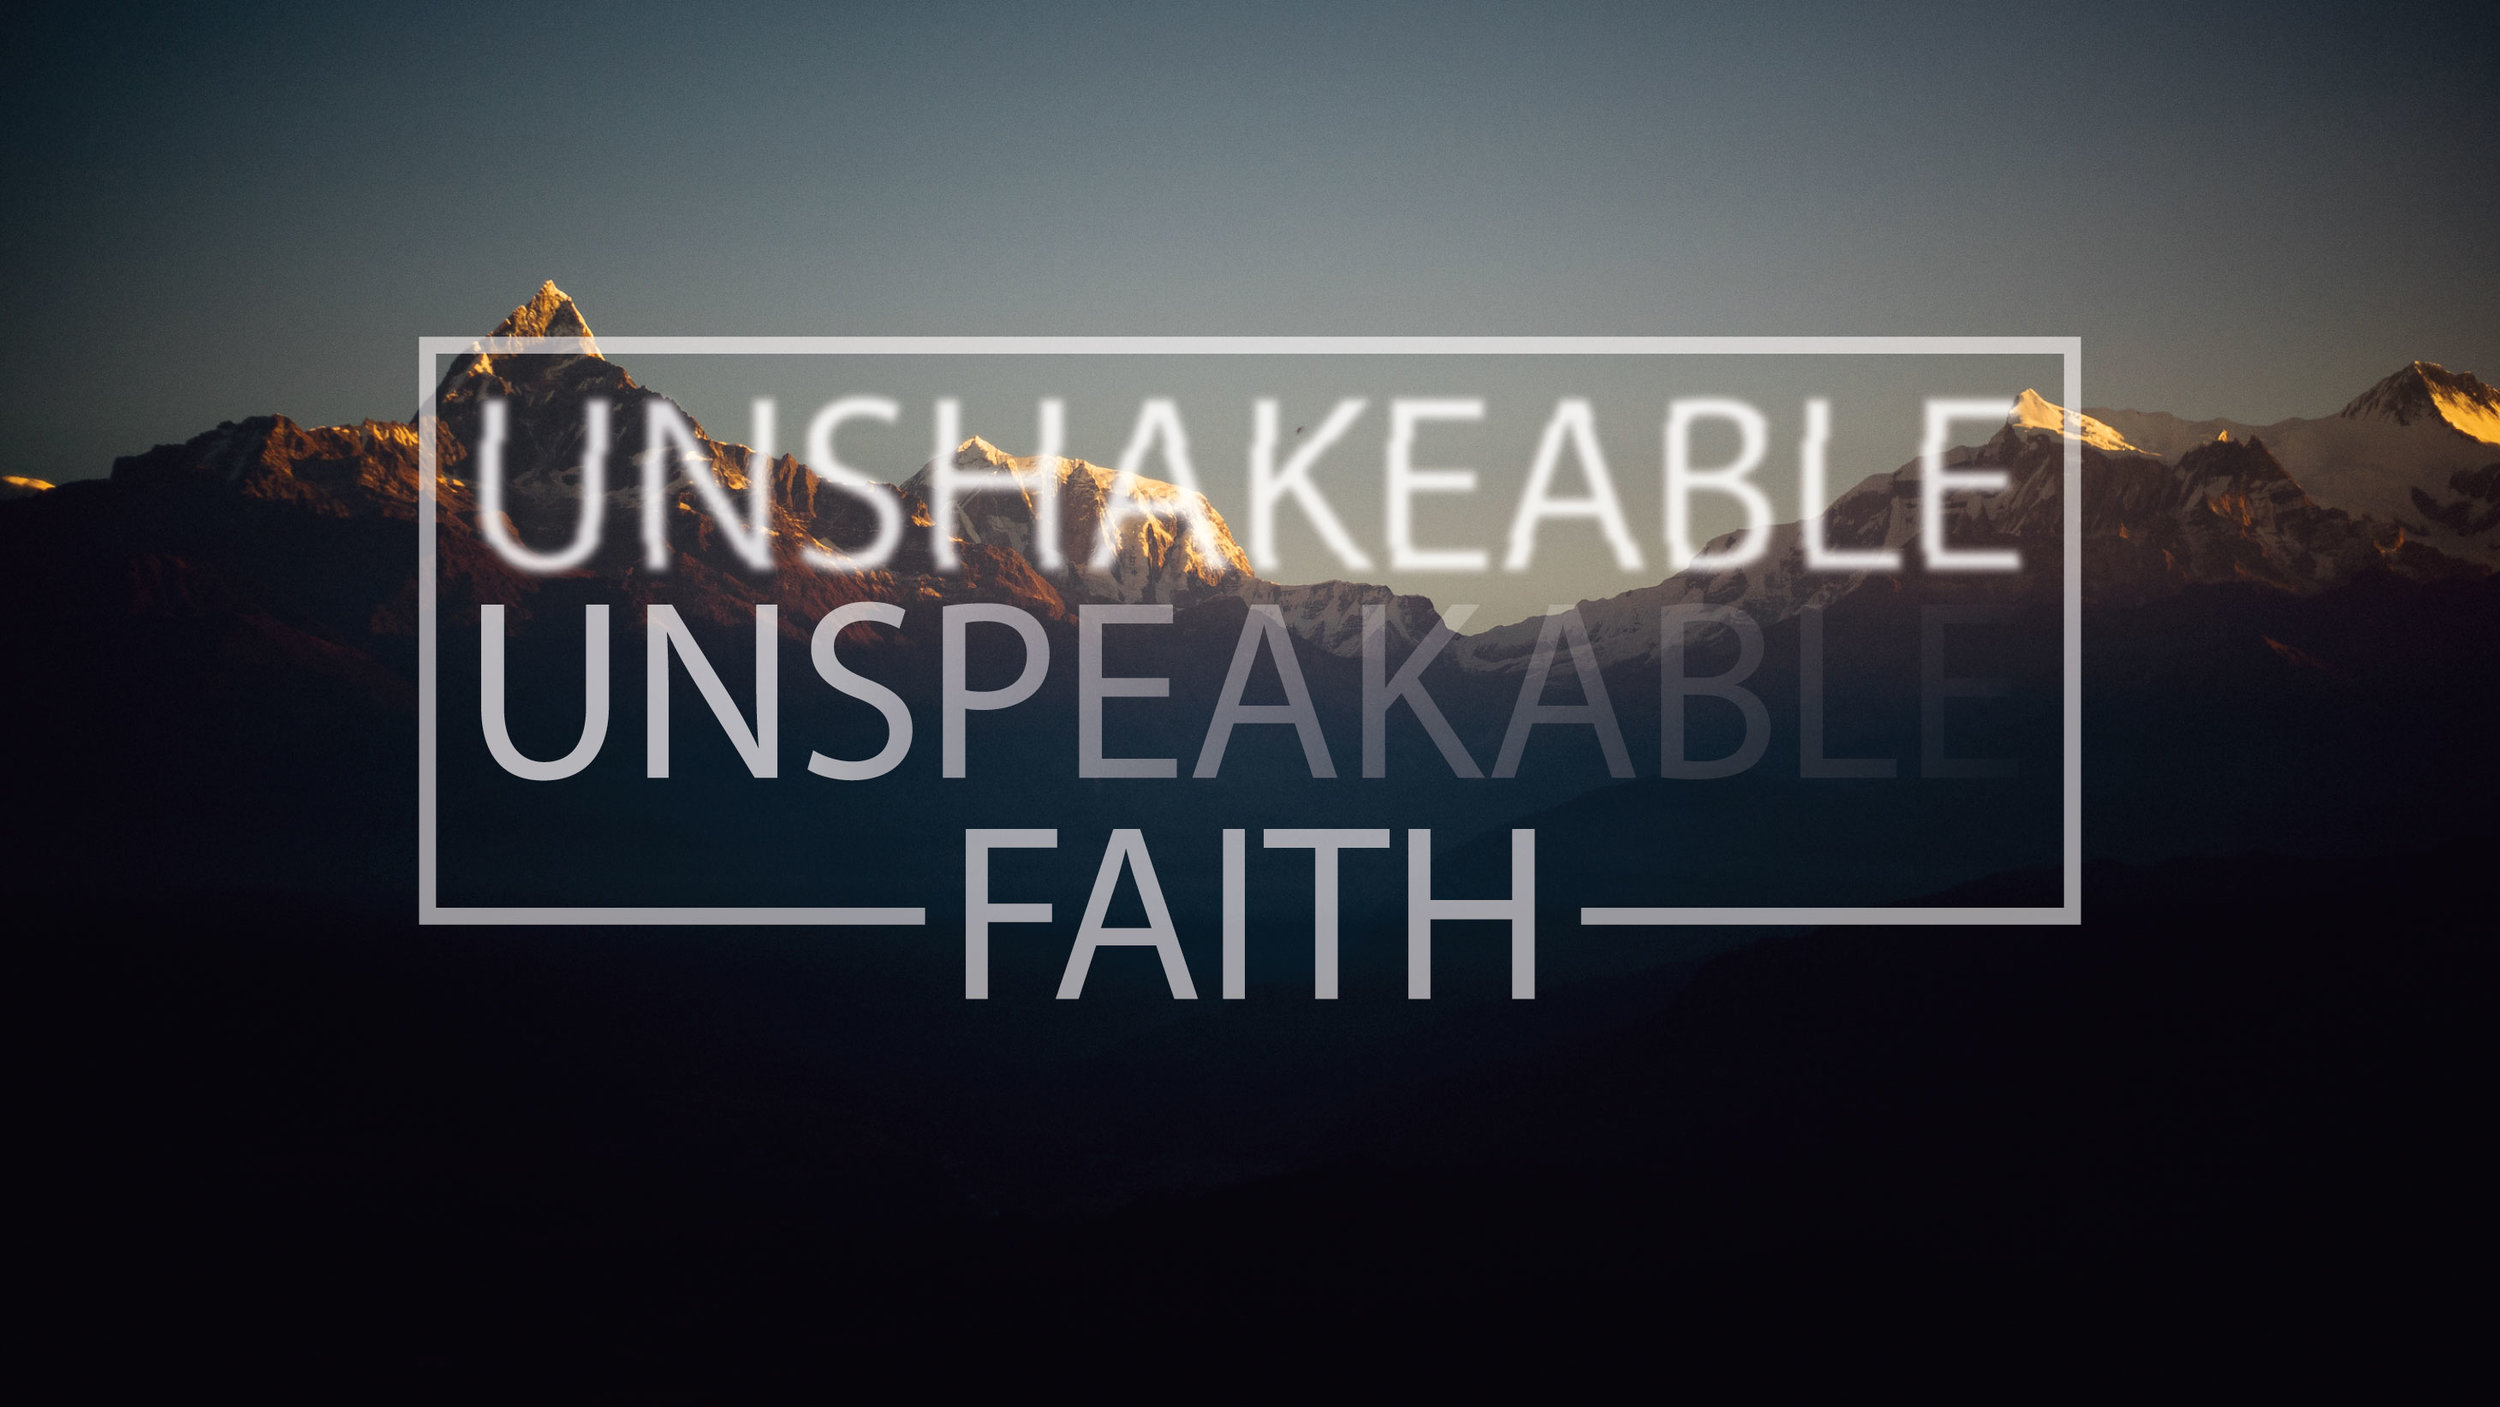 Unshakeable-Unspeakable-Faith.jpg